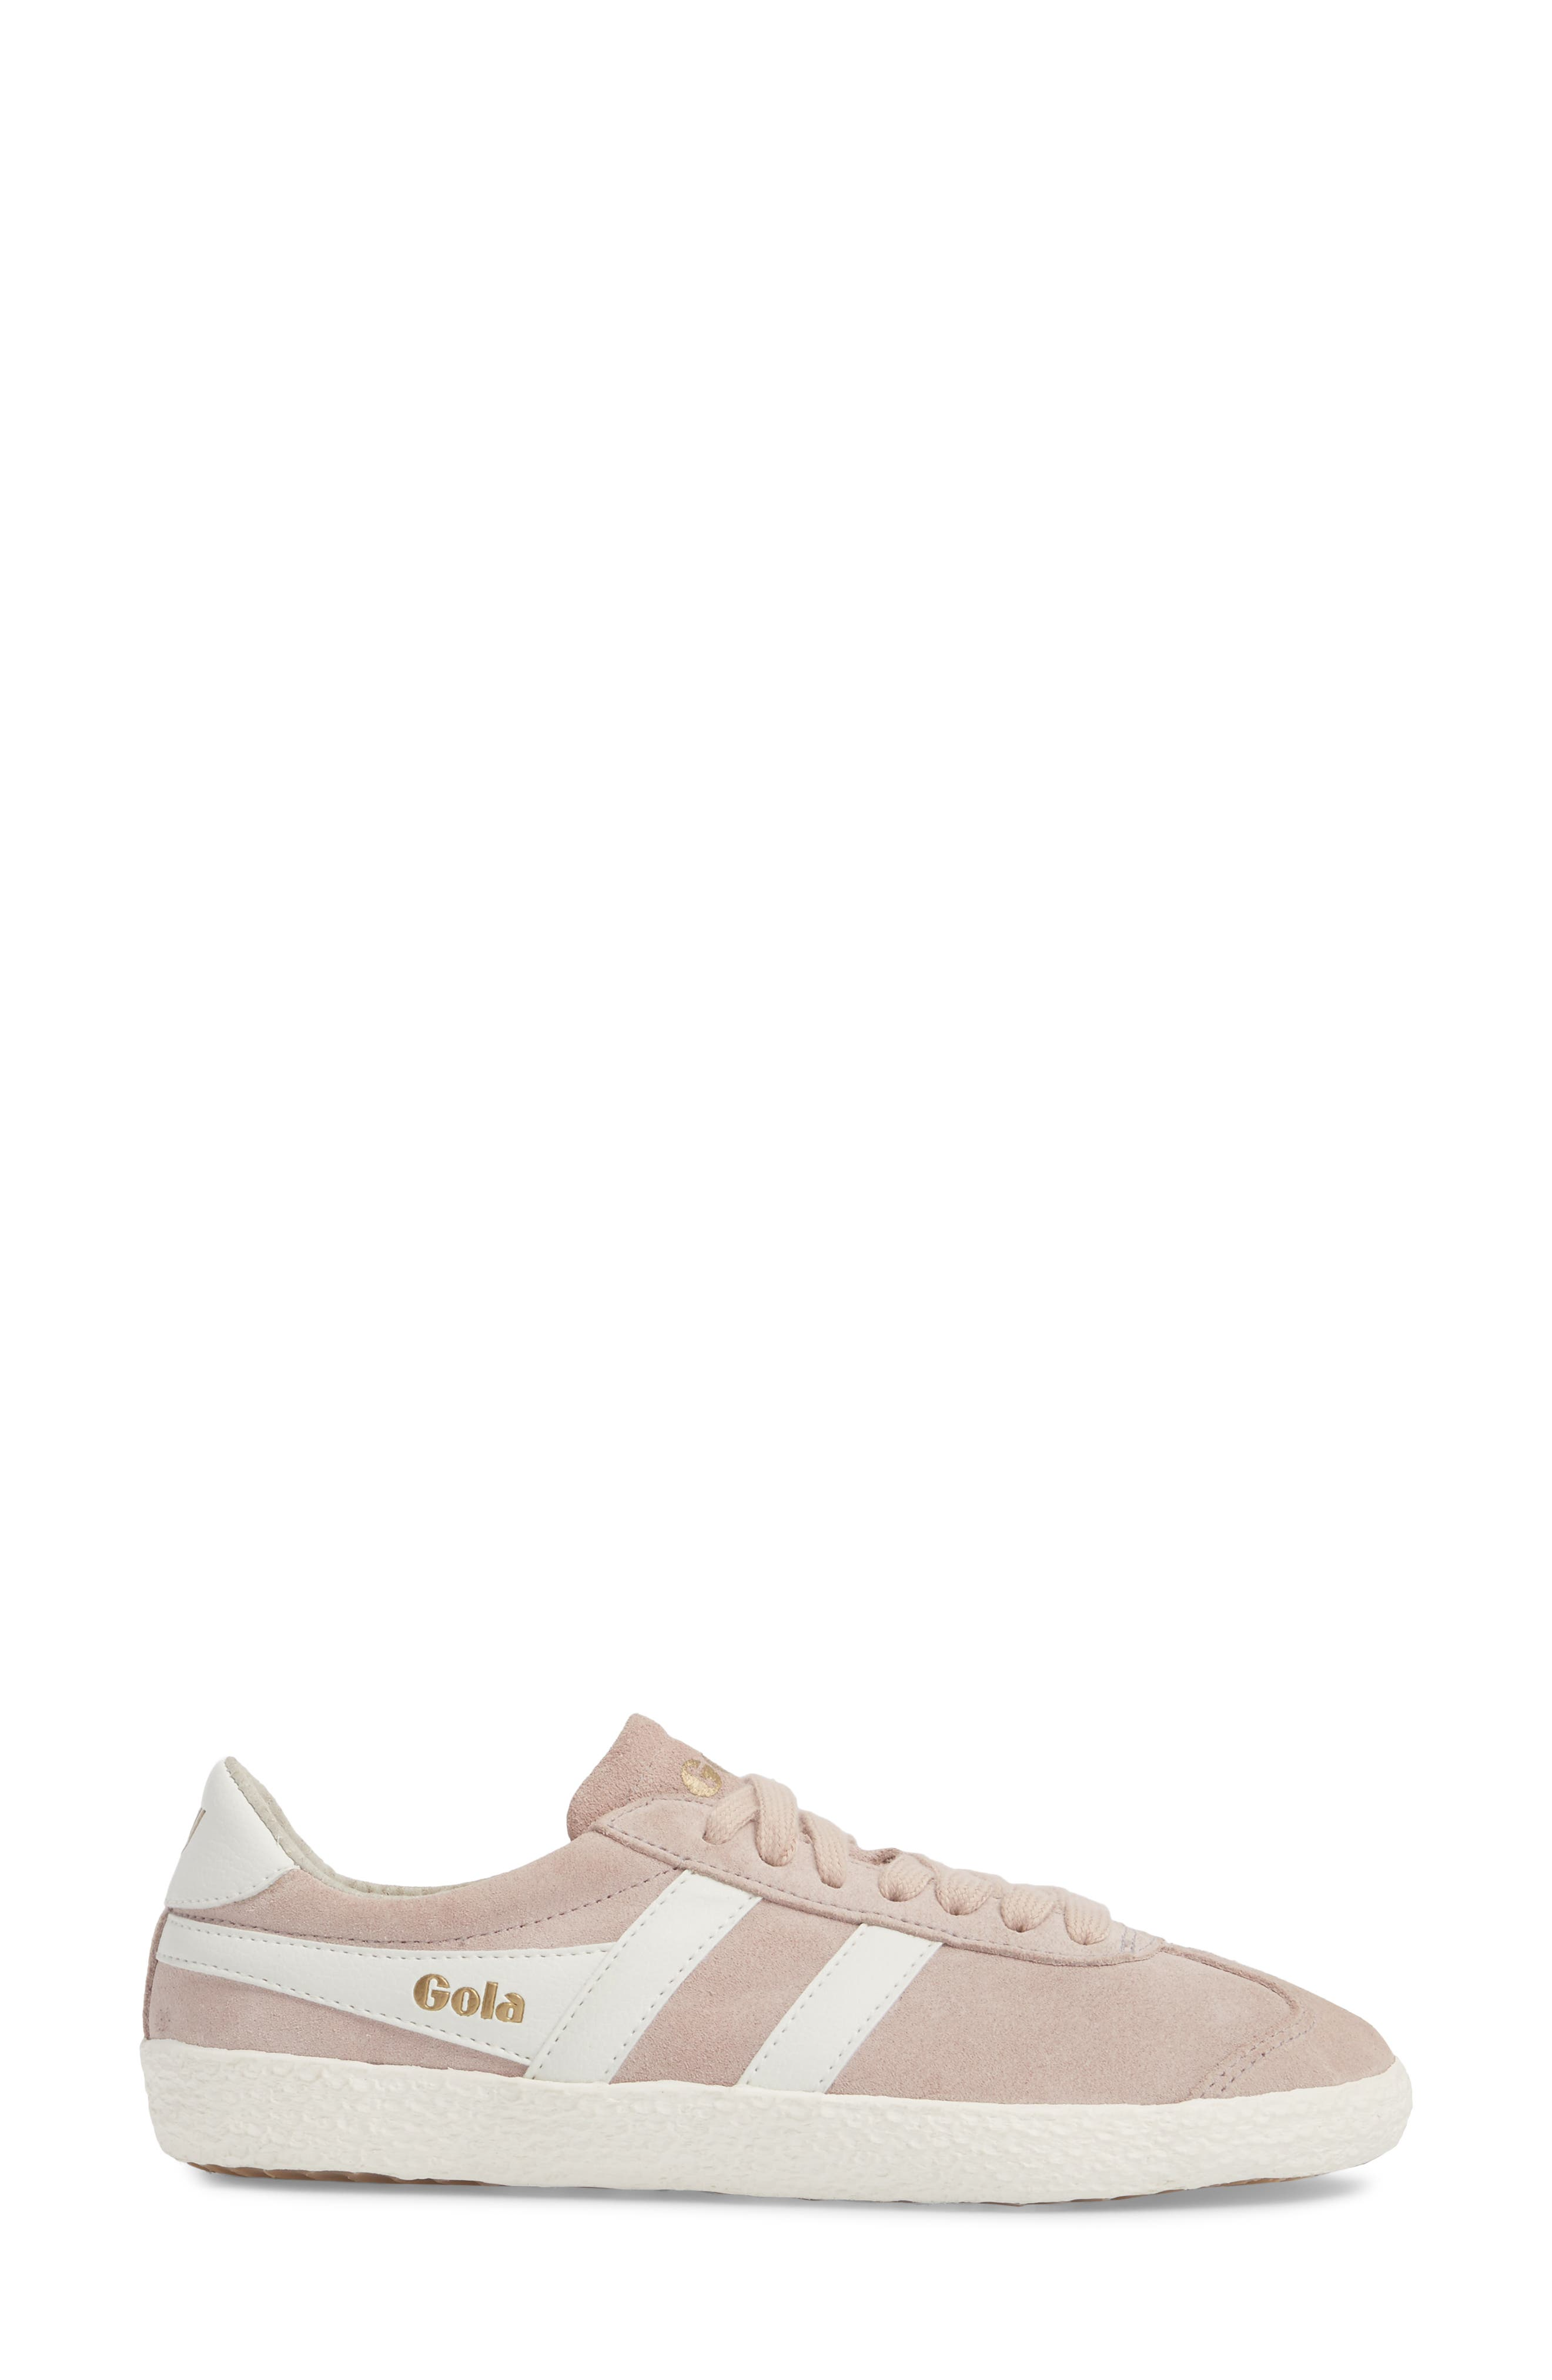 Specialist Low Top Sneaker,                             Alternate thumbnail 3, color,                             BLOSSOM/ OFF WHITE